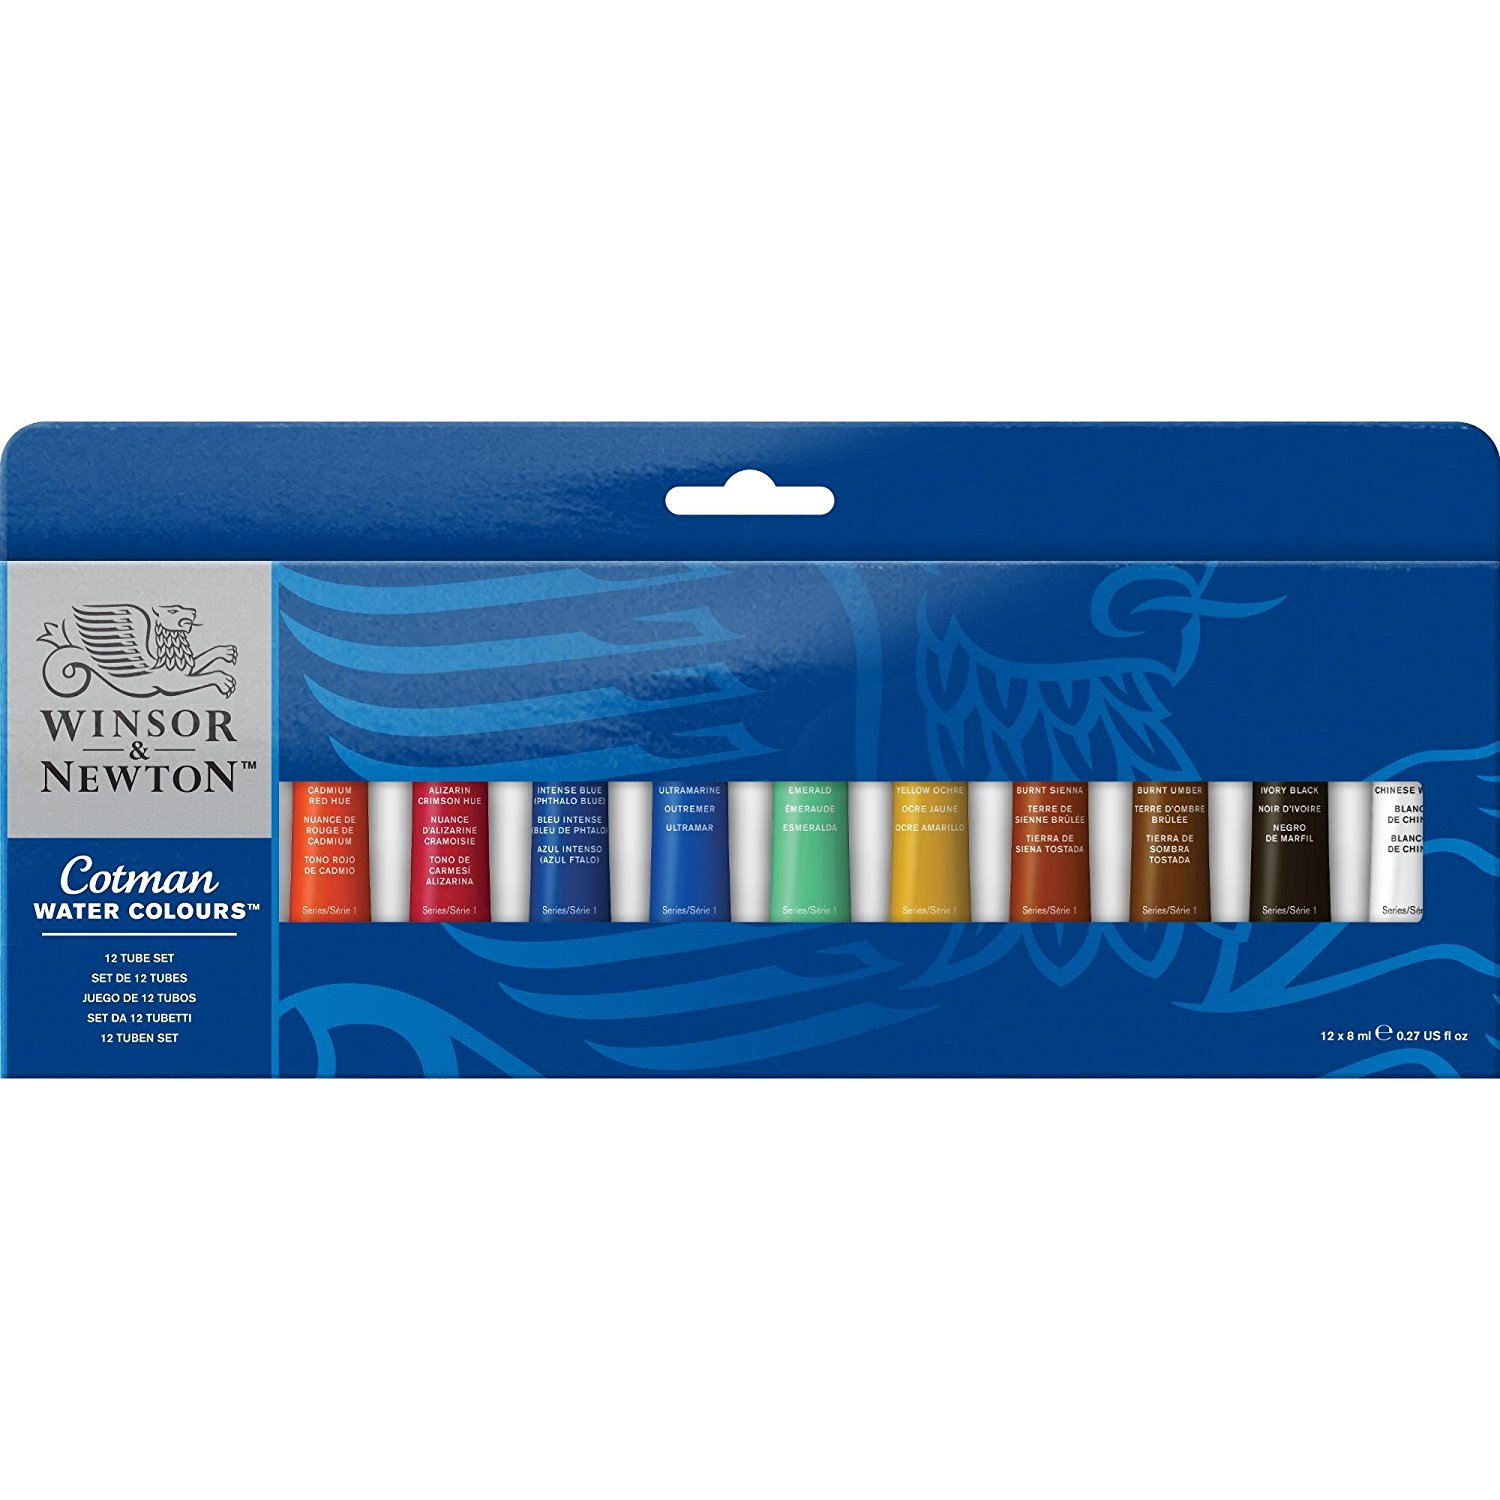 1. Un set d'aquarelle en tube